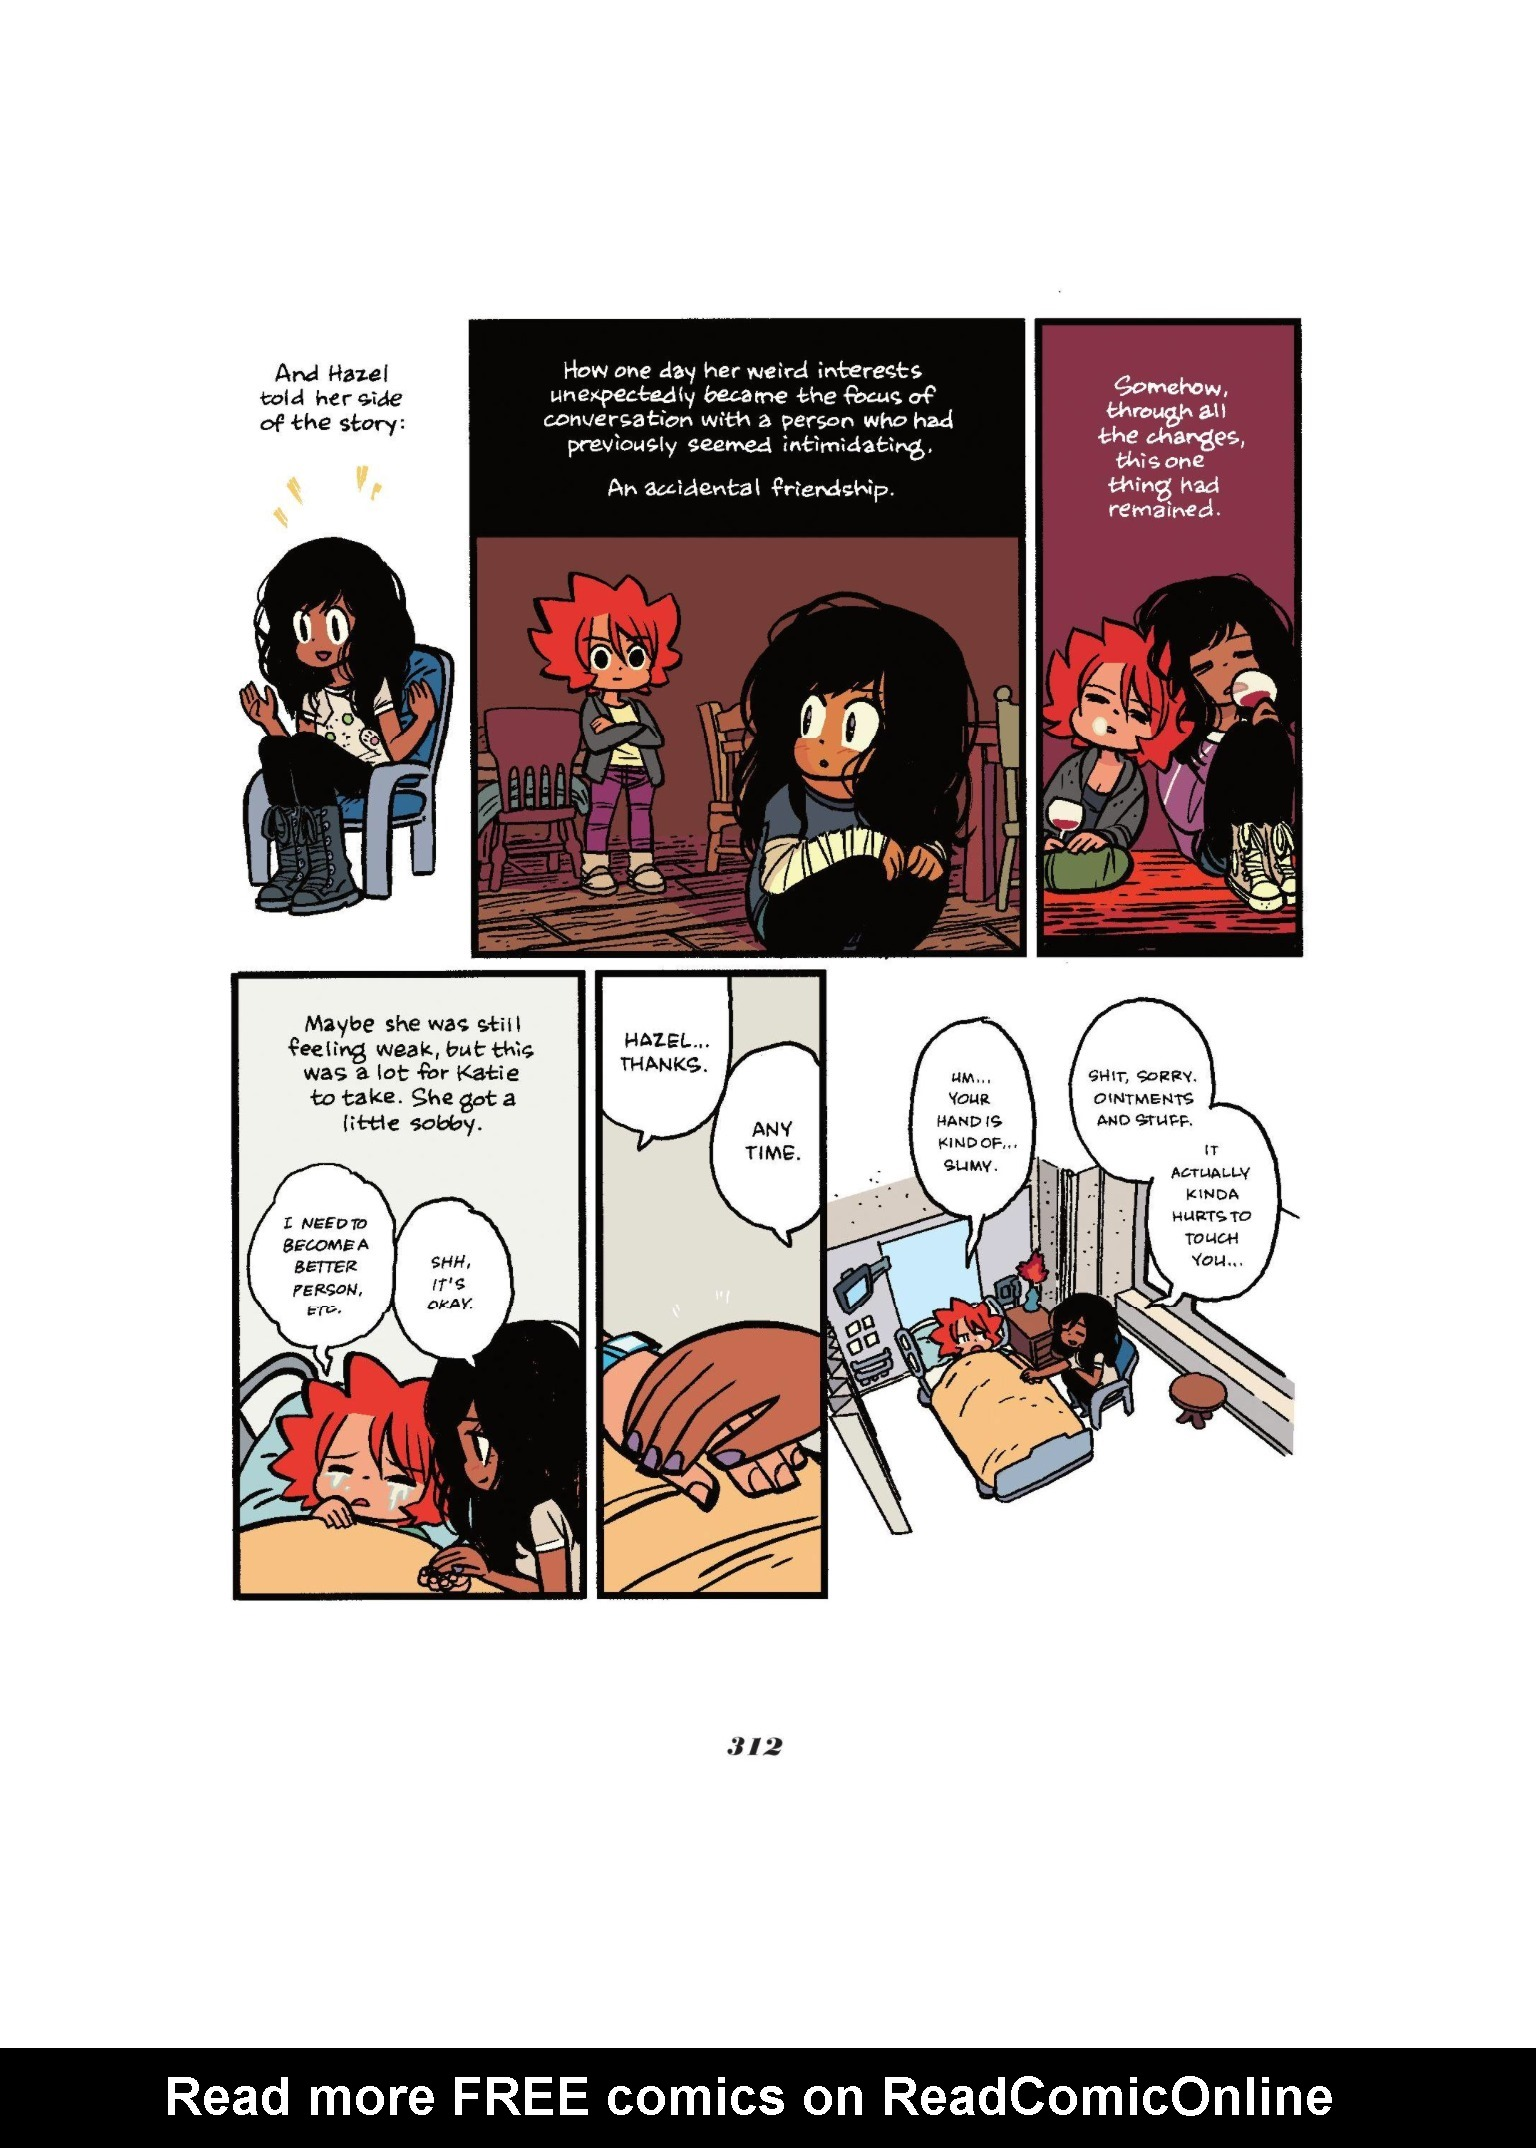 Read online Seconds comic -  Issue # Full - 312